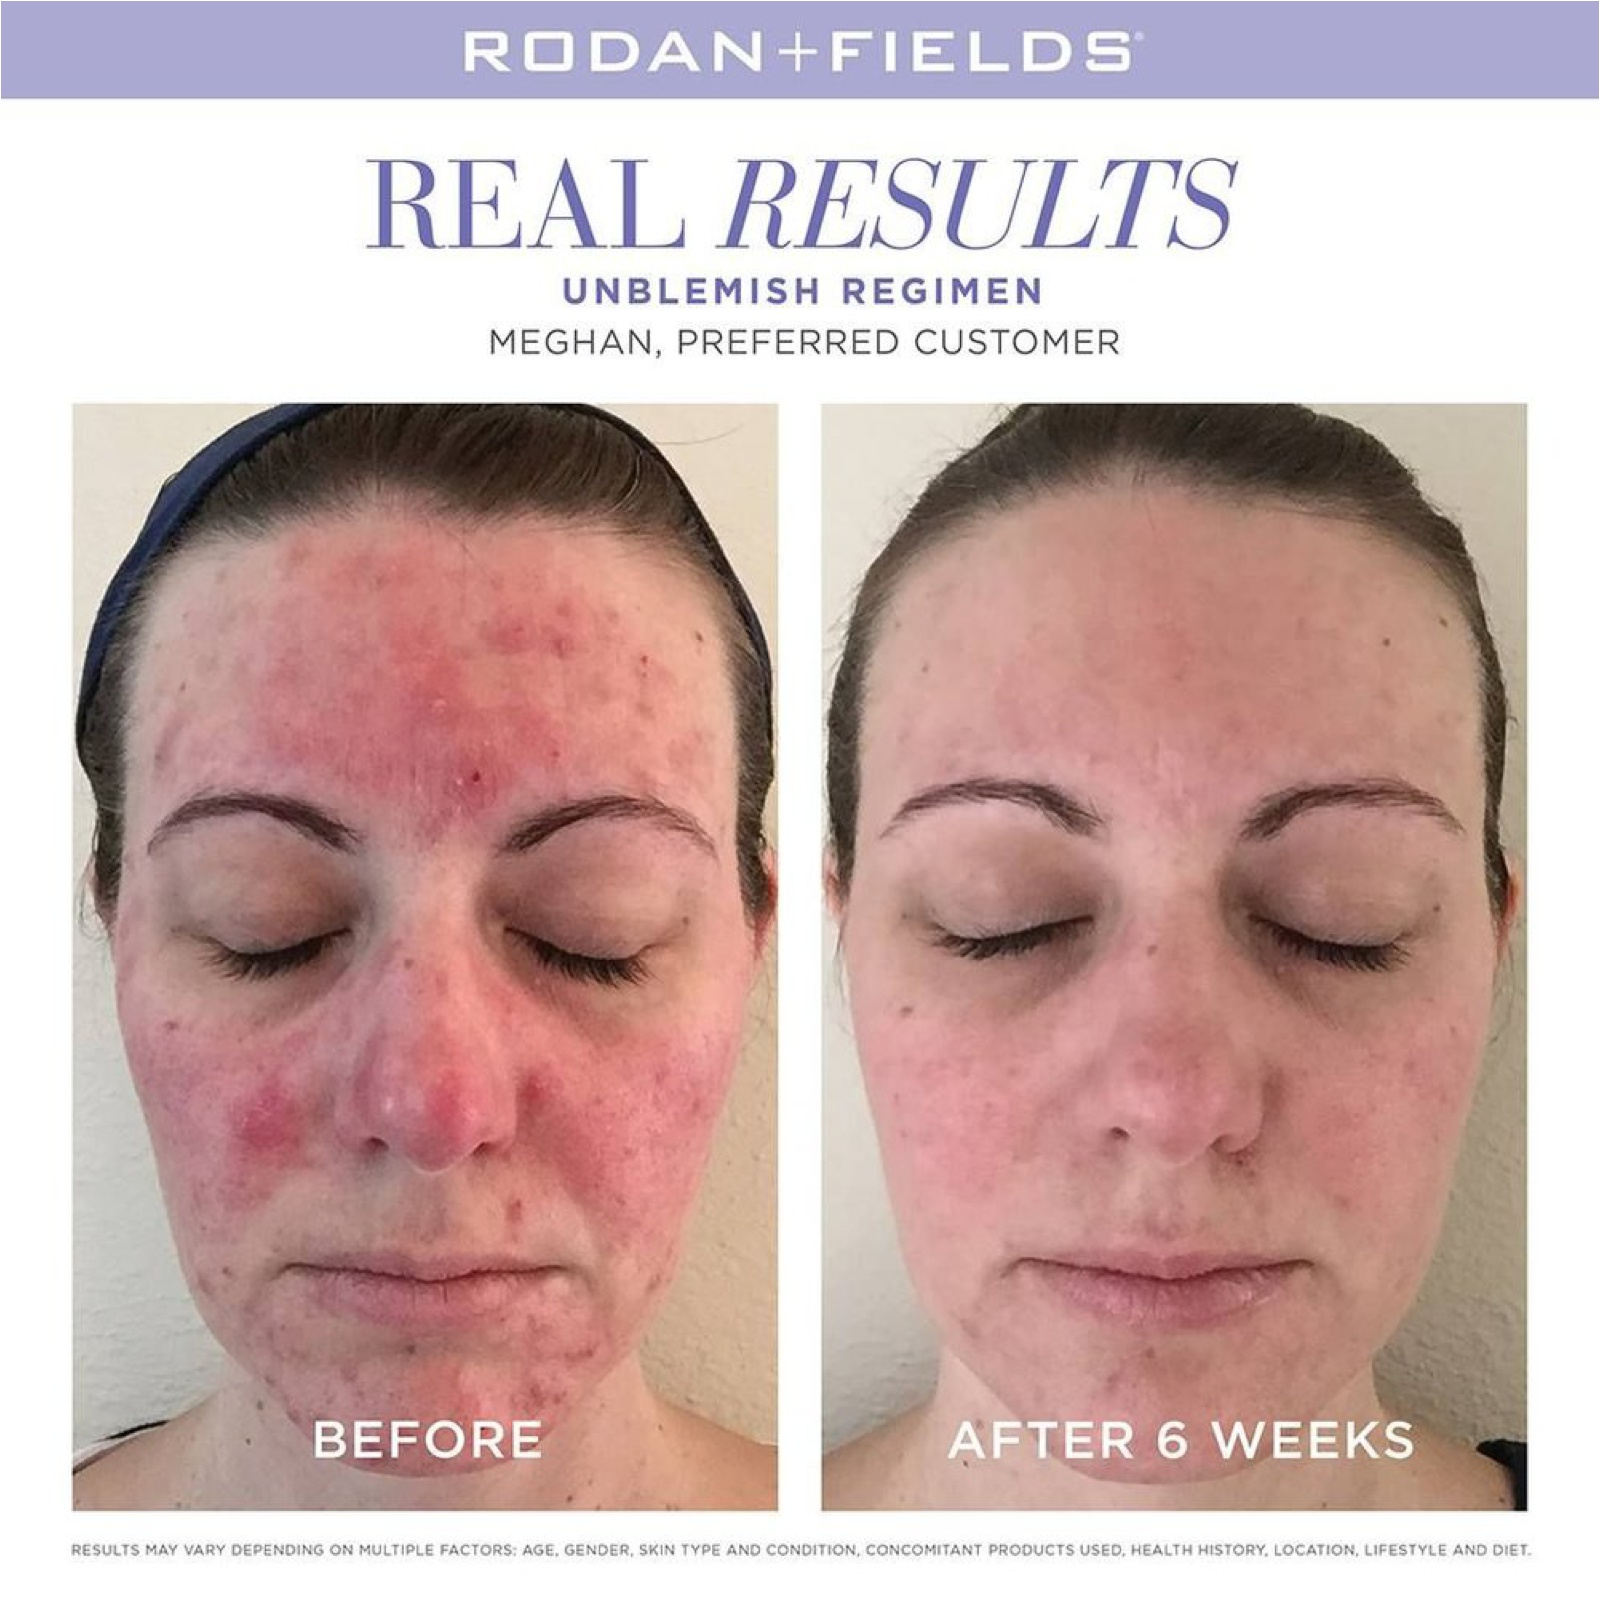 Unblemish Line - Click here to try our acne line!